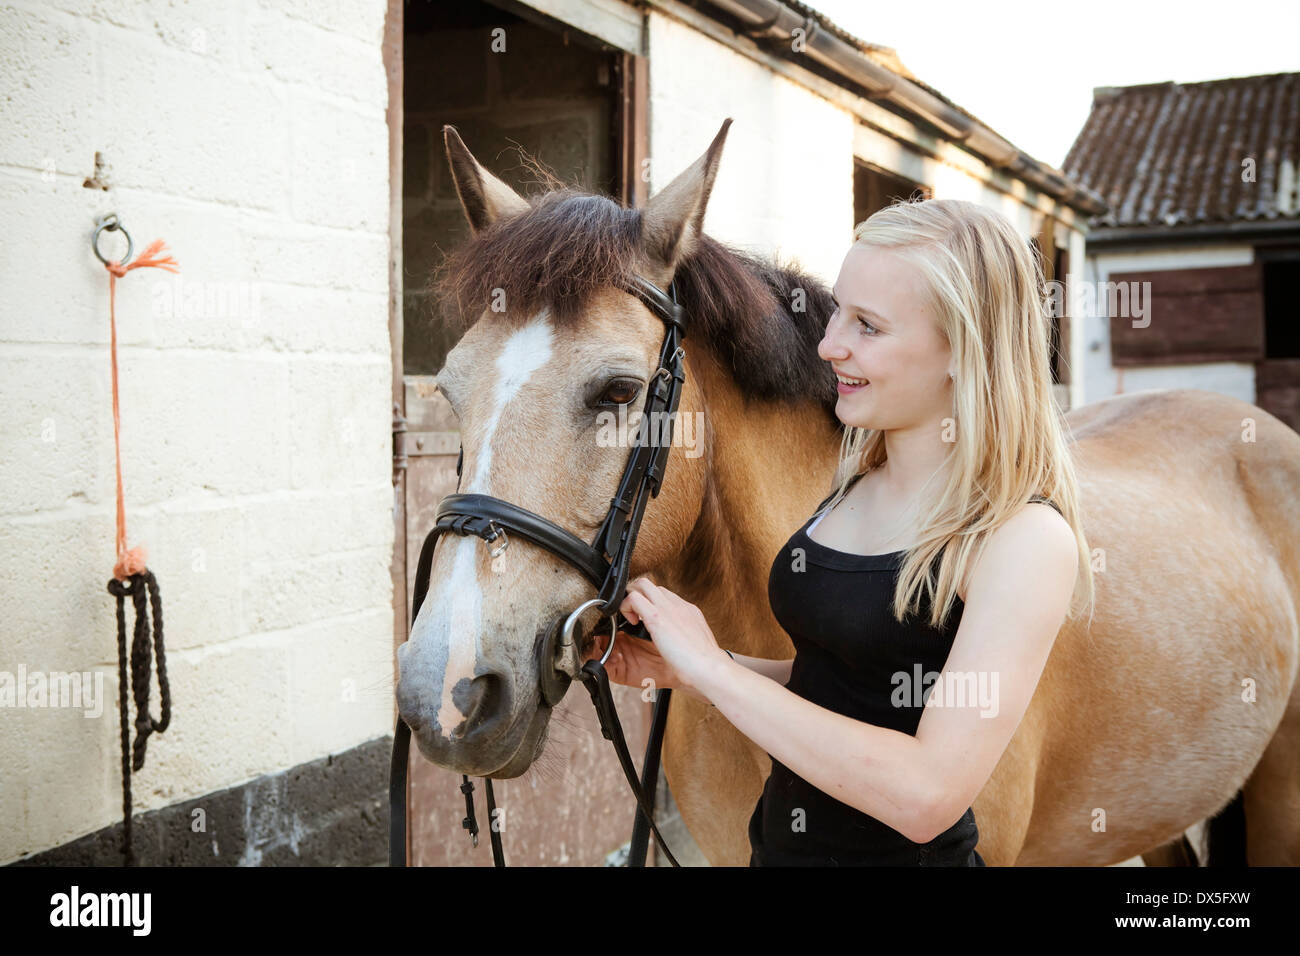 Young blond girl leading a brown horse outside stables - Stock Image